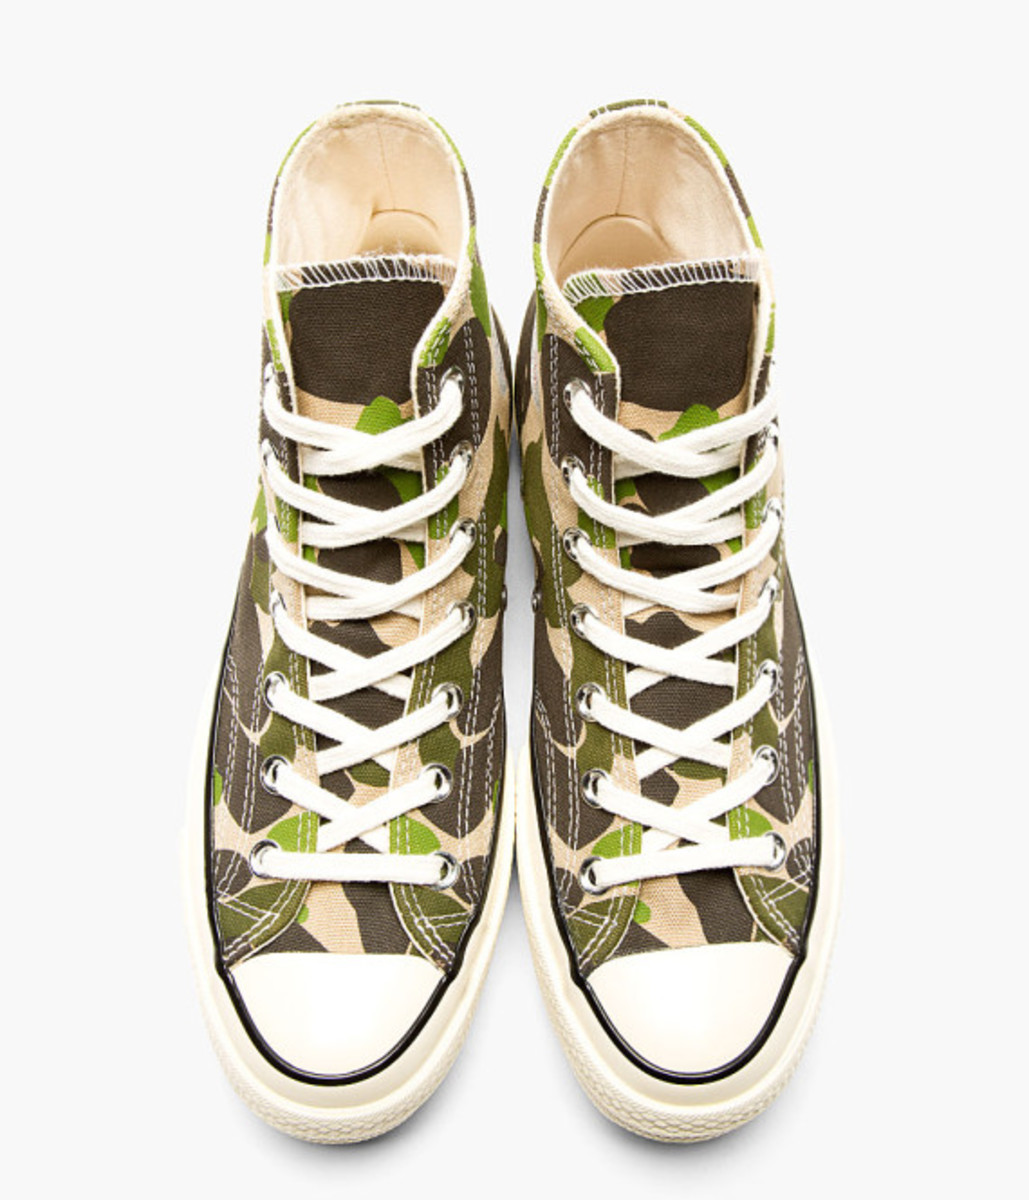 converse-chuck-taylor-all-star-70s-original-green-camo-03